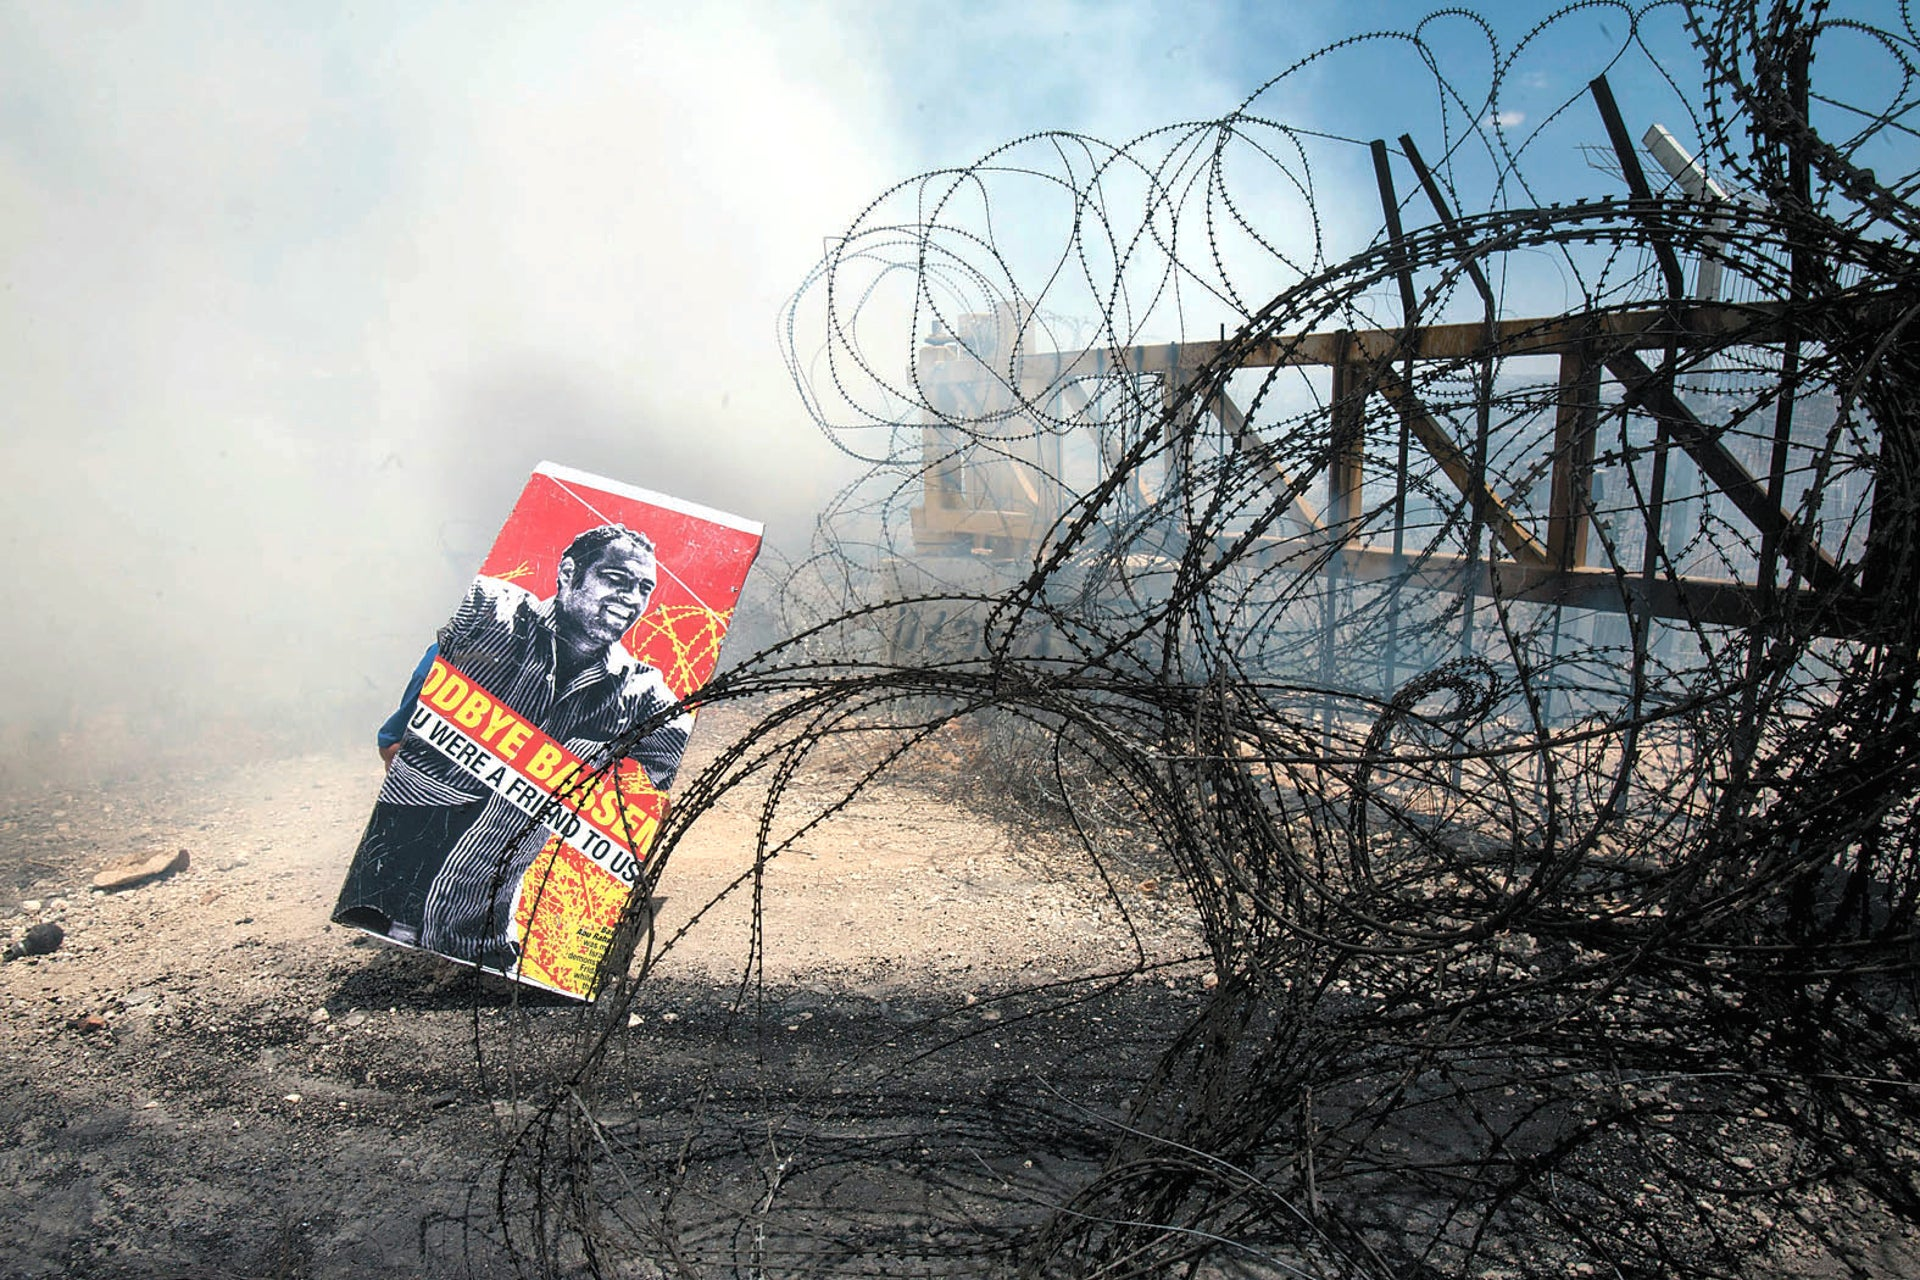 From 'Activestills: Photography as Protest in Palestine/Israel.'